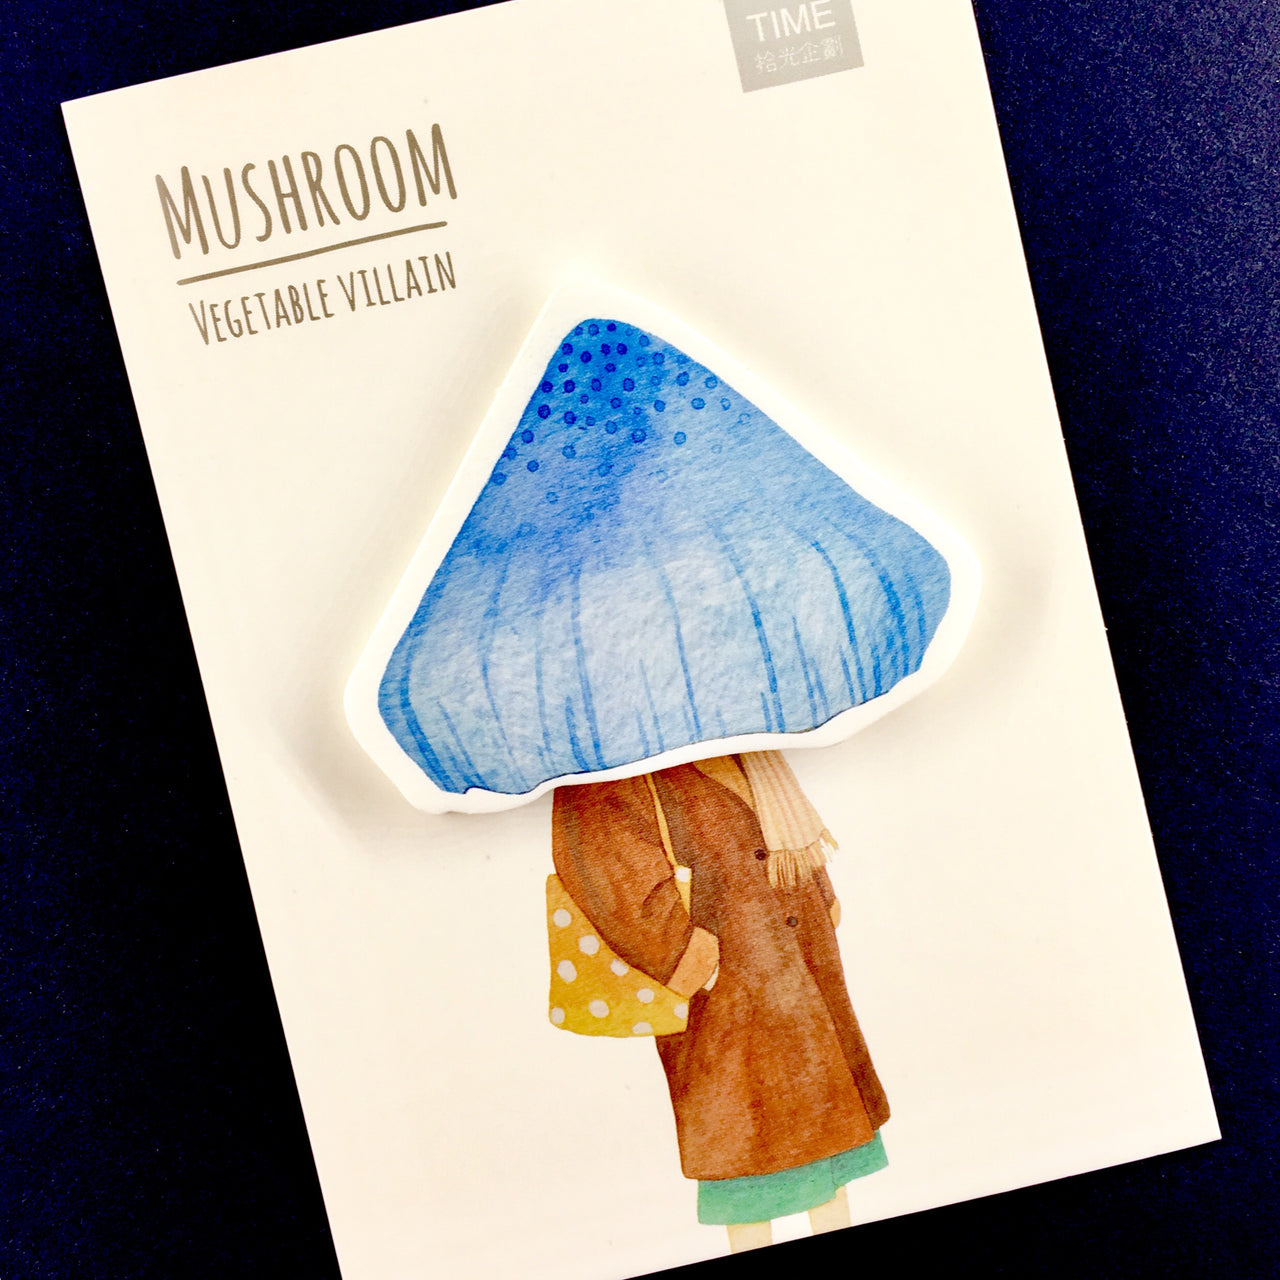 Vegetable Villain Sticky Notes shown in mushroom style